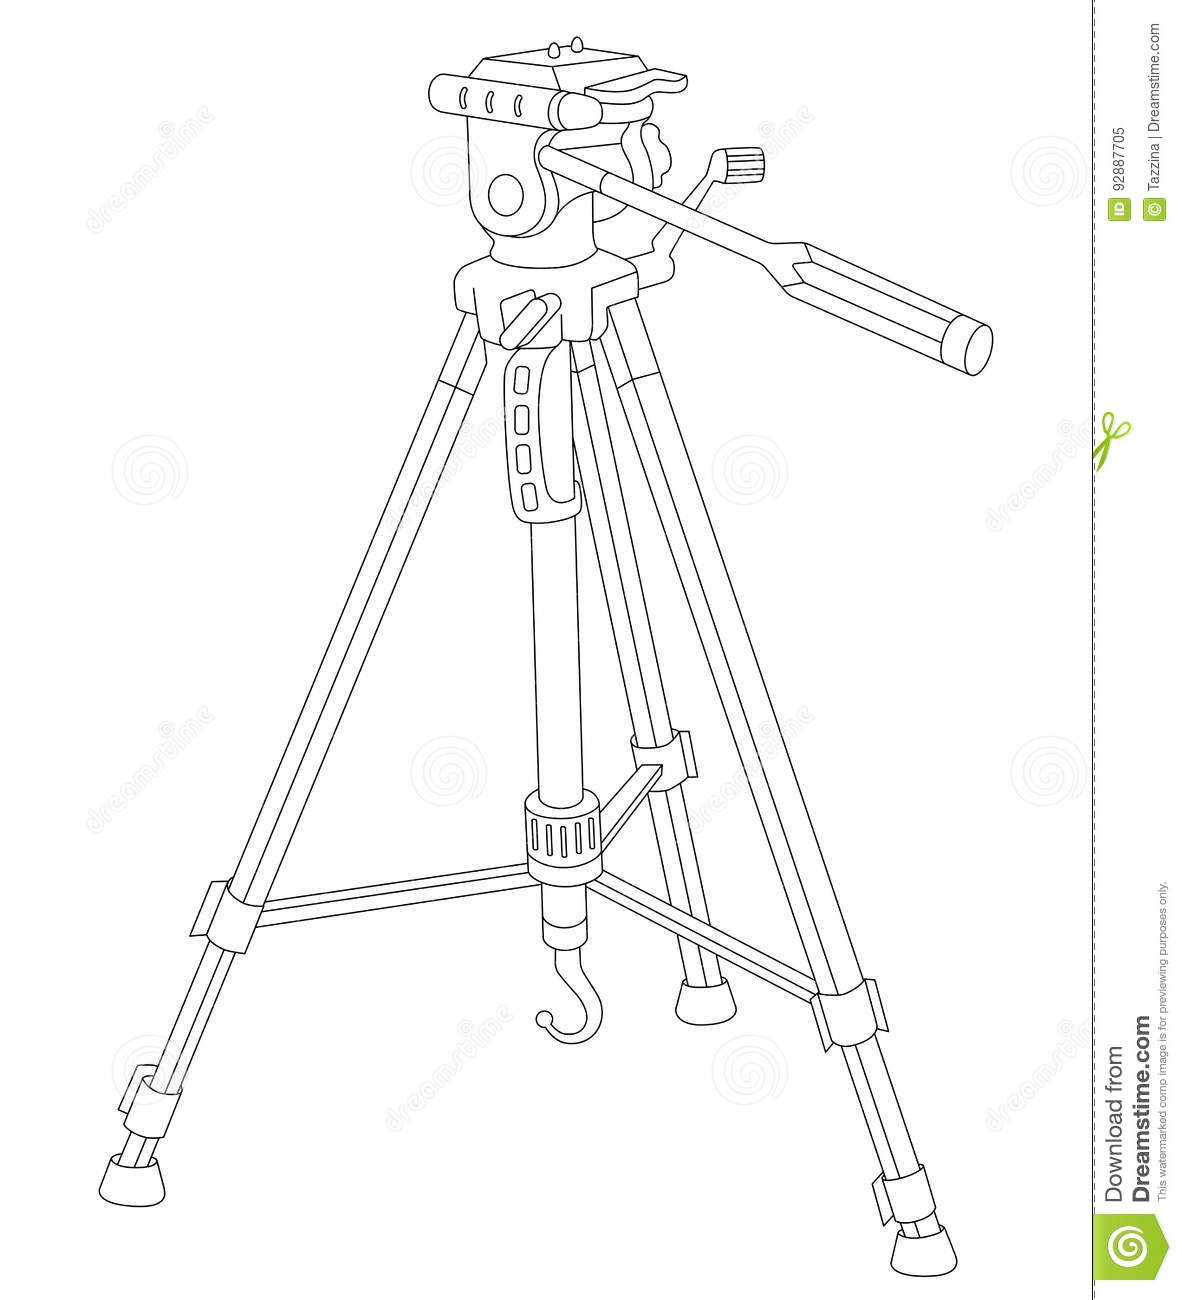 tripod for camera and camcorder stock vector illustration of imagetripod for camera and camcorder